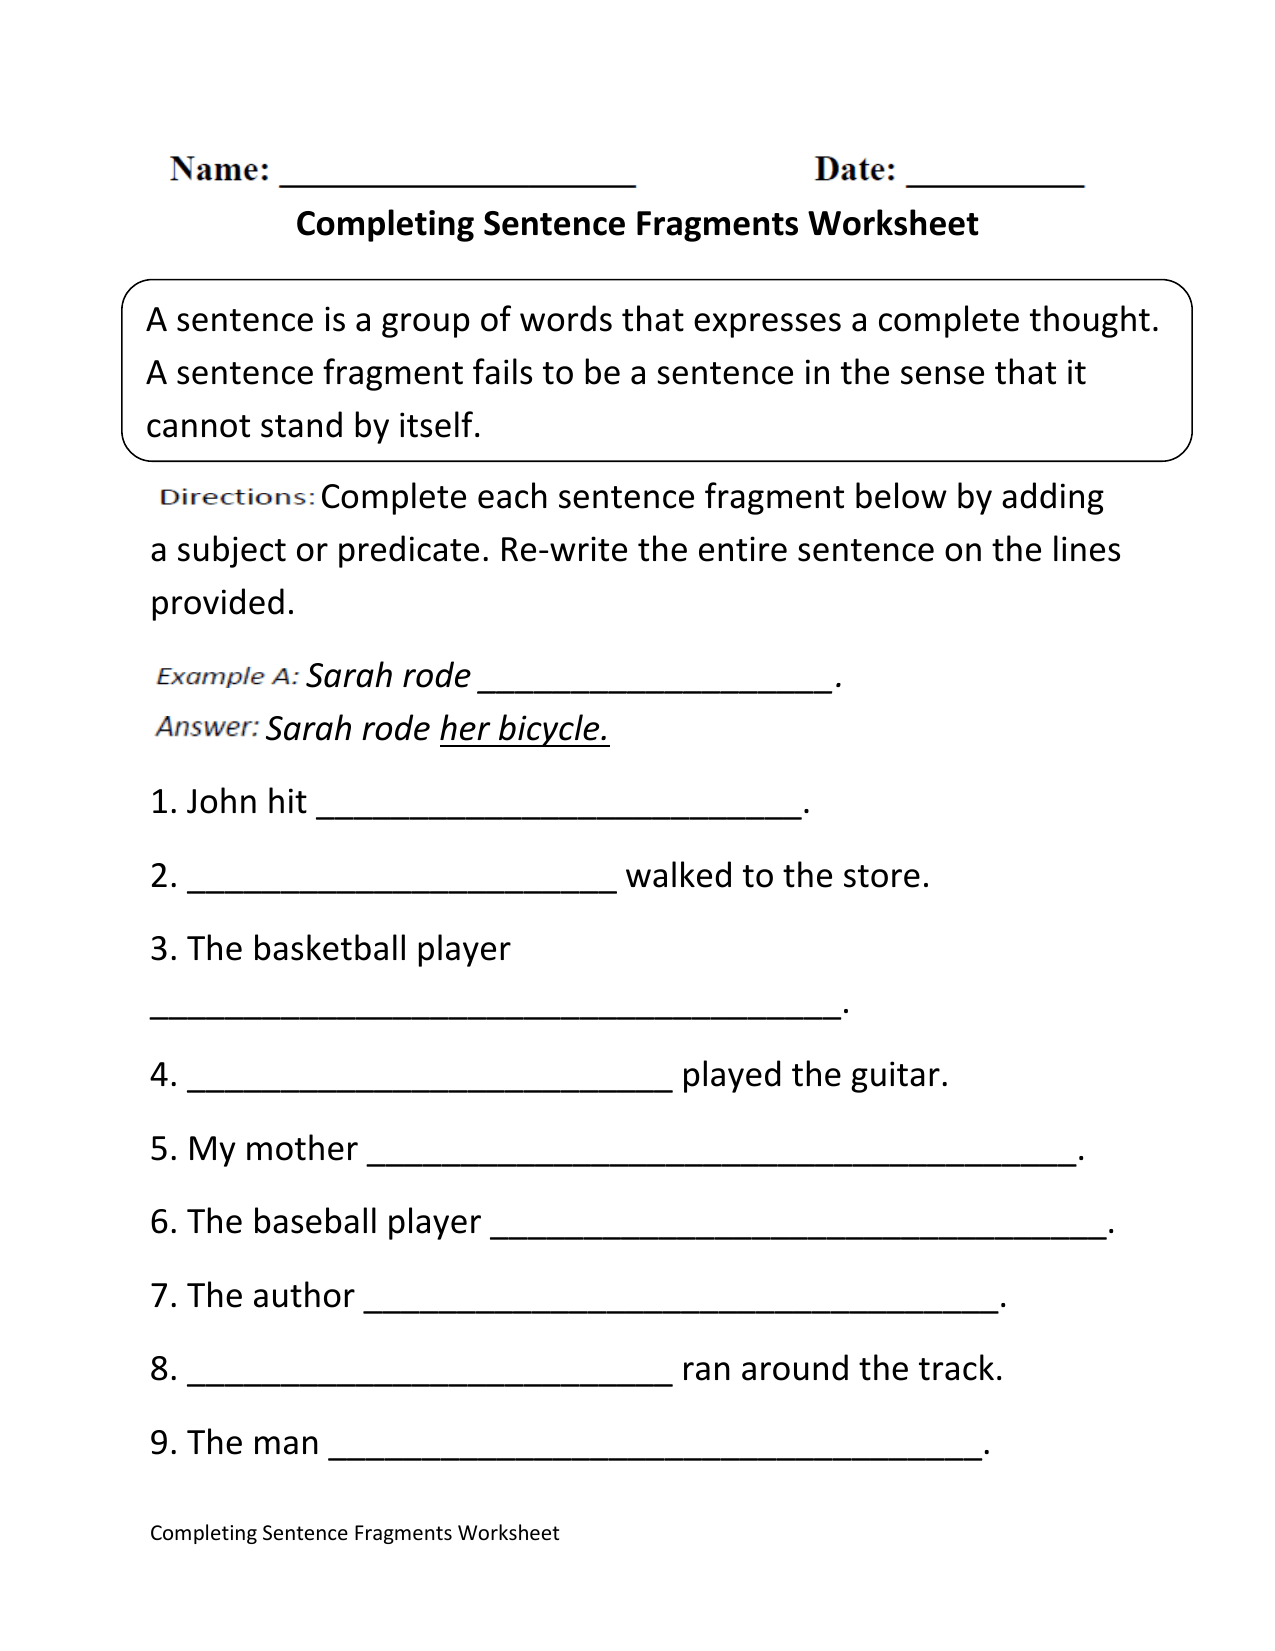 Completing Sentence Fragments 1 1